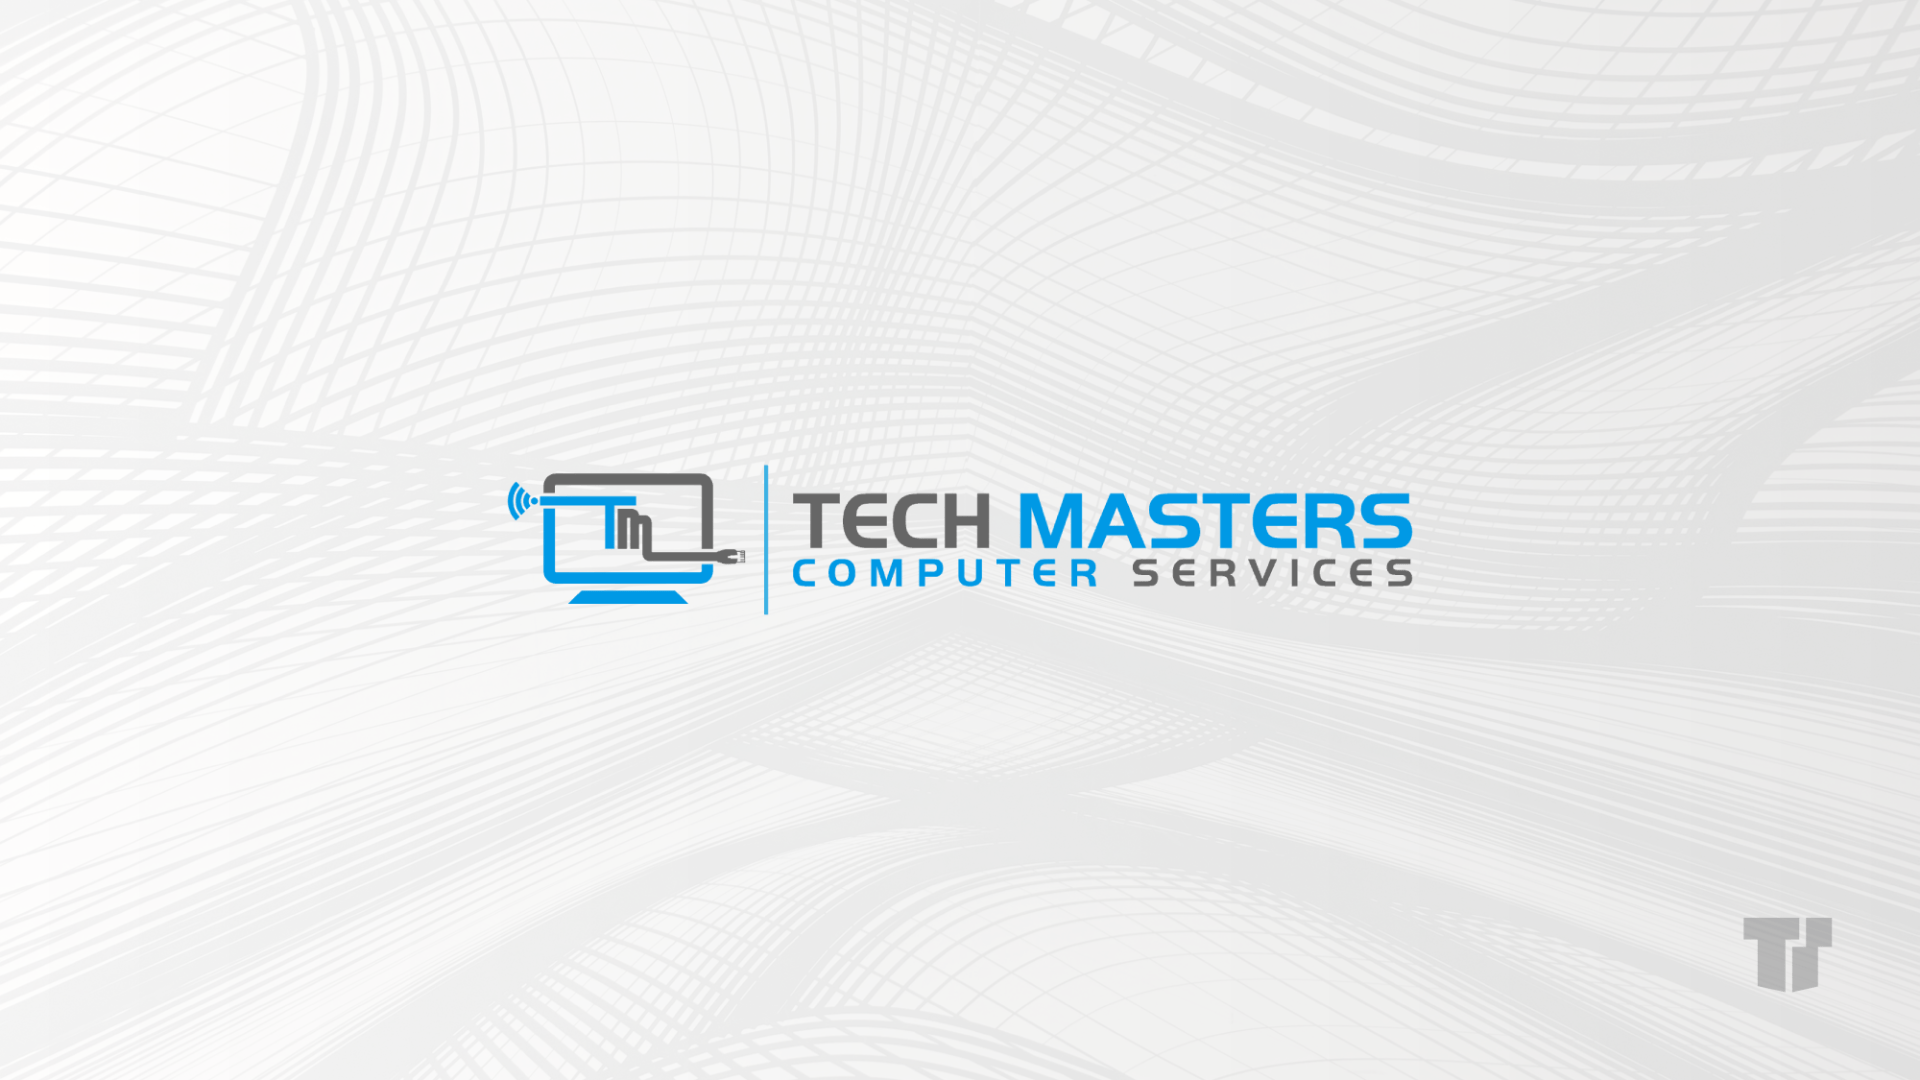 Tech Masters cover image